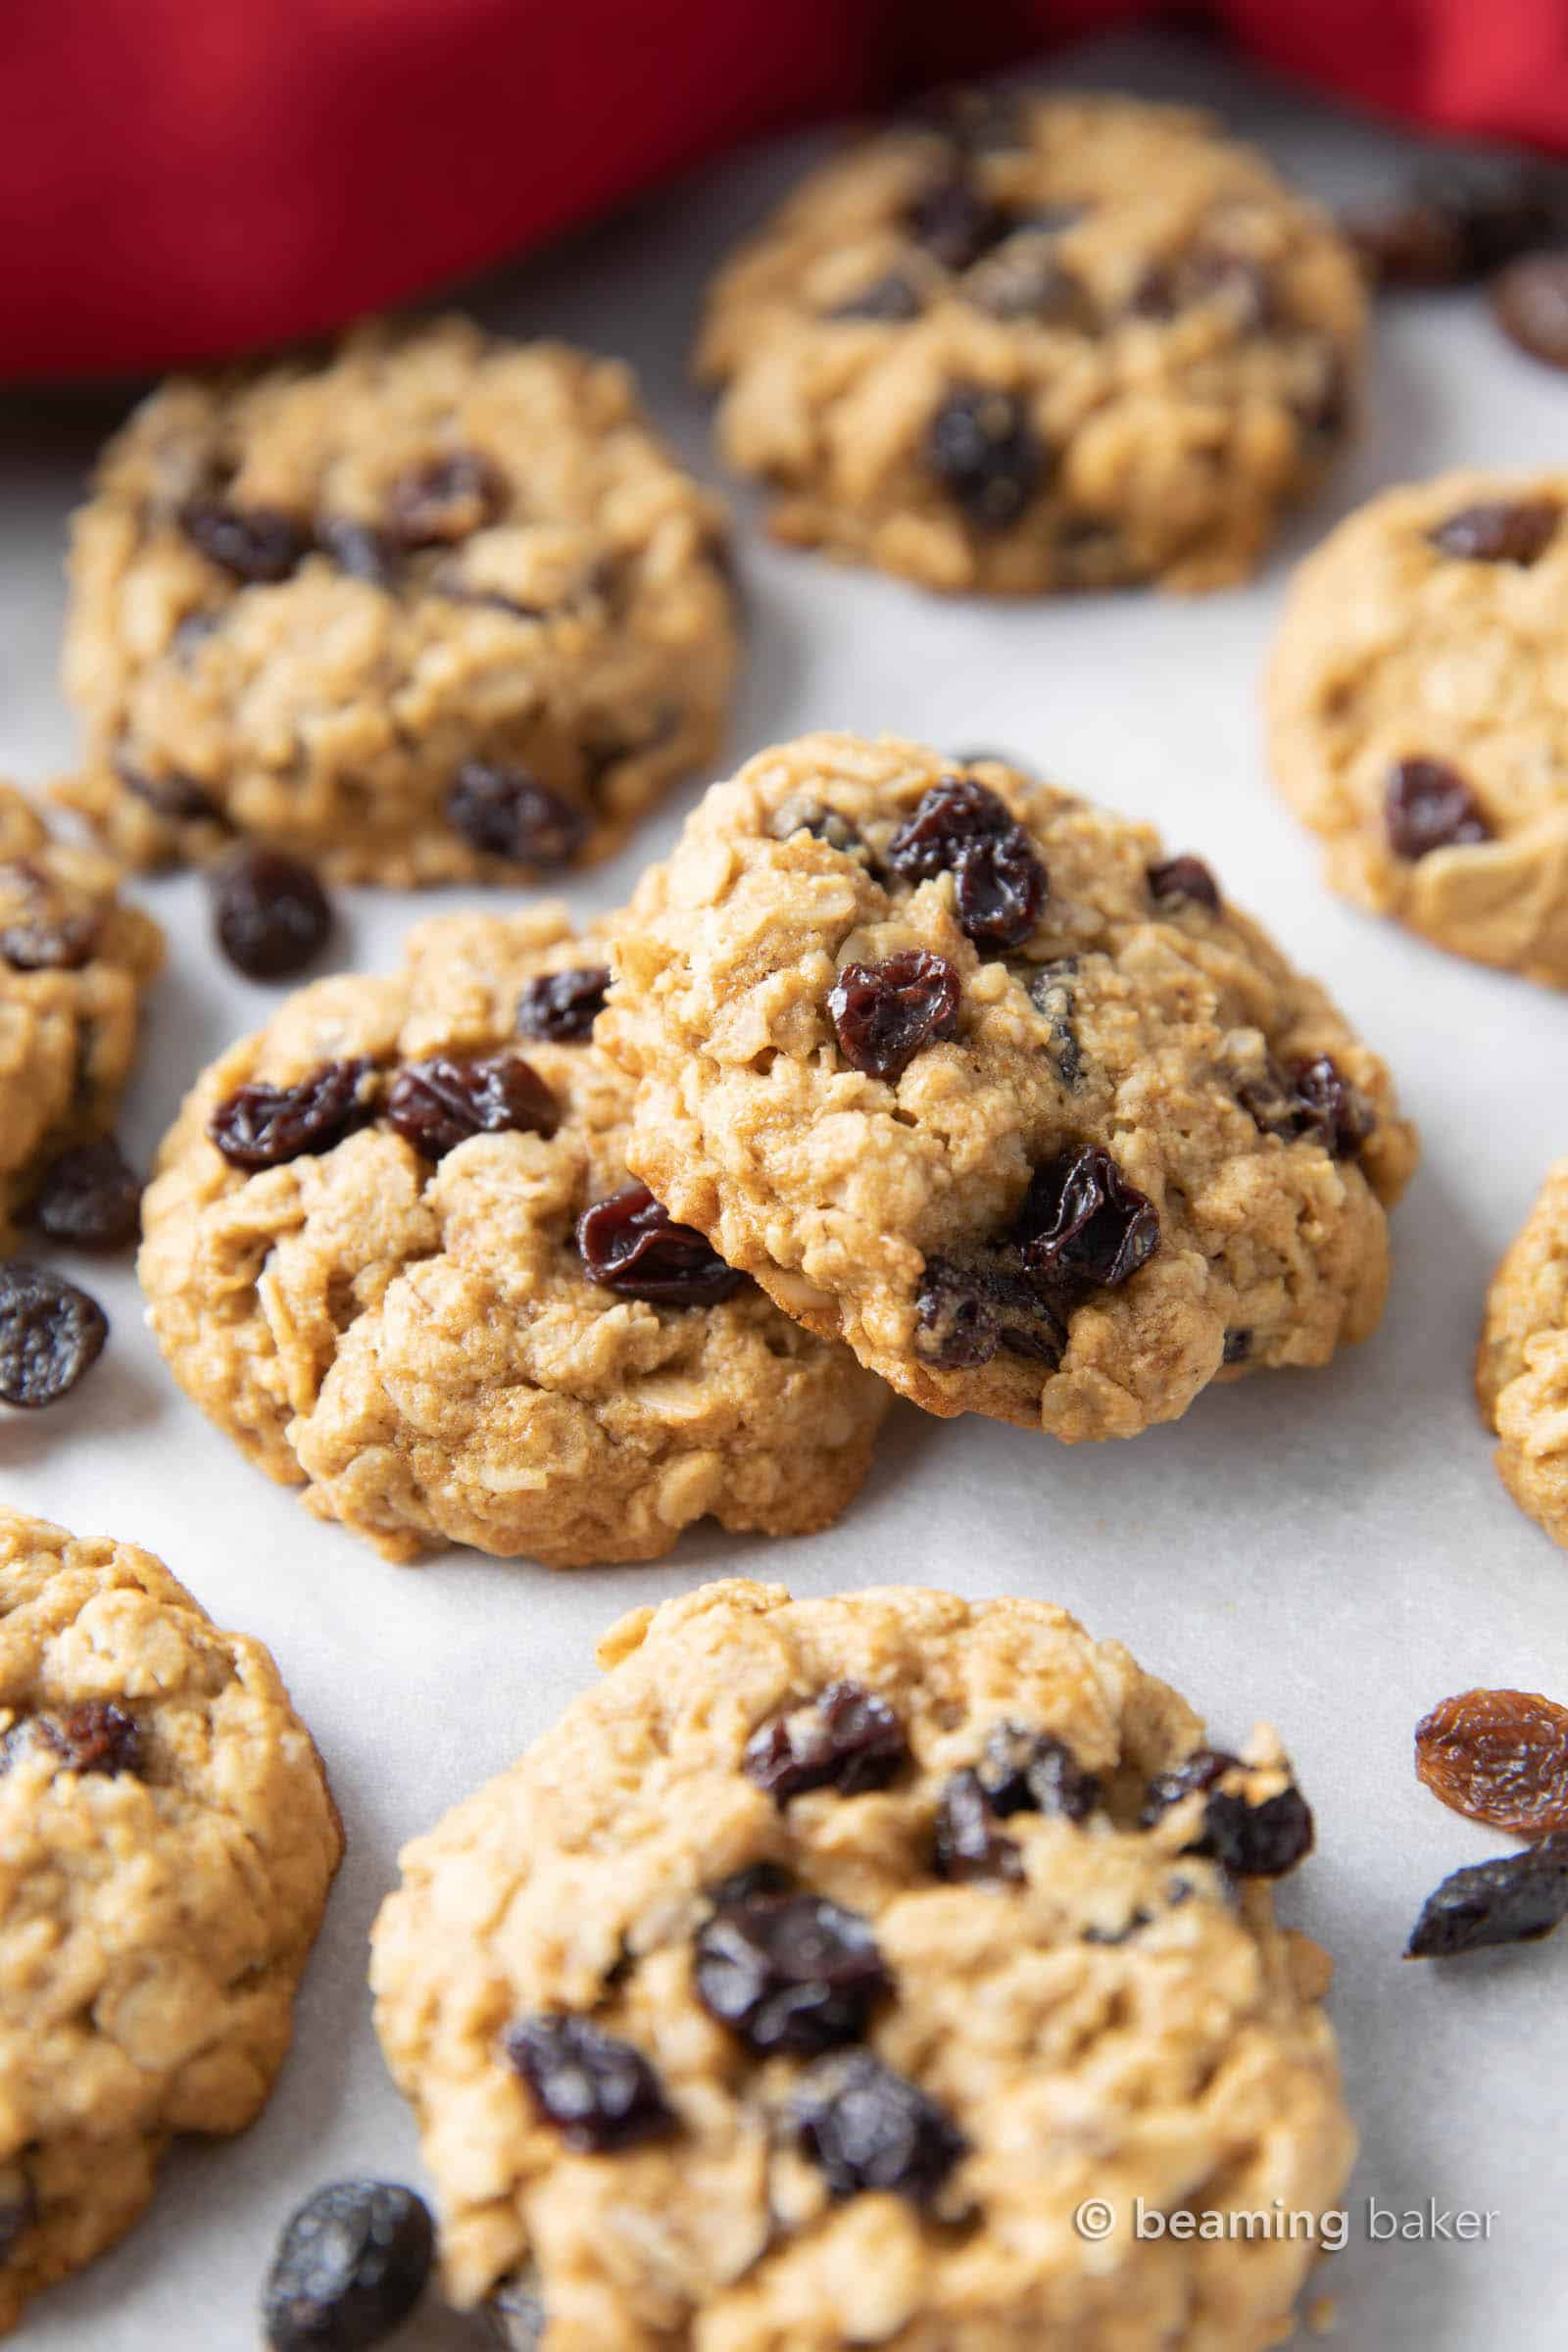 Easy Gluten Free Vegan Oatmeal Raisin Cookies (Vegan): this gluten free oatmeal raisin cookies recipe yields soft & buttery oatmeal cookies bursting with juicy raisins. Refined Sugar-Free. #OatmealRaisin #GlutenFree #Vegan #Cookies | Recipe at BeamingBaker.com